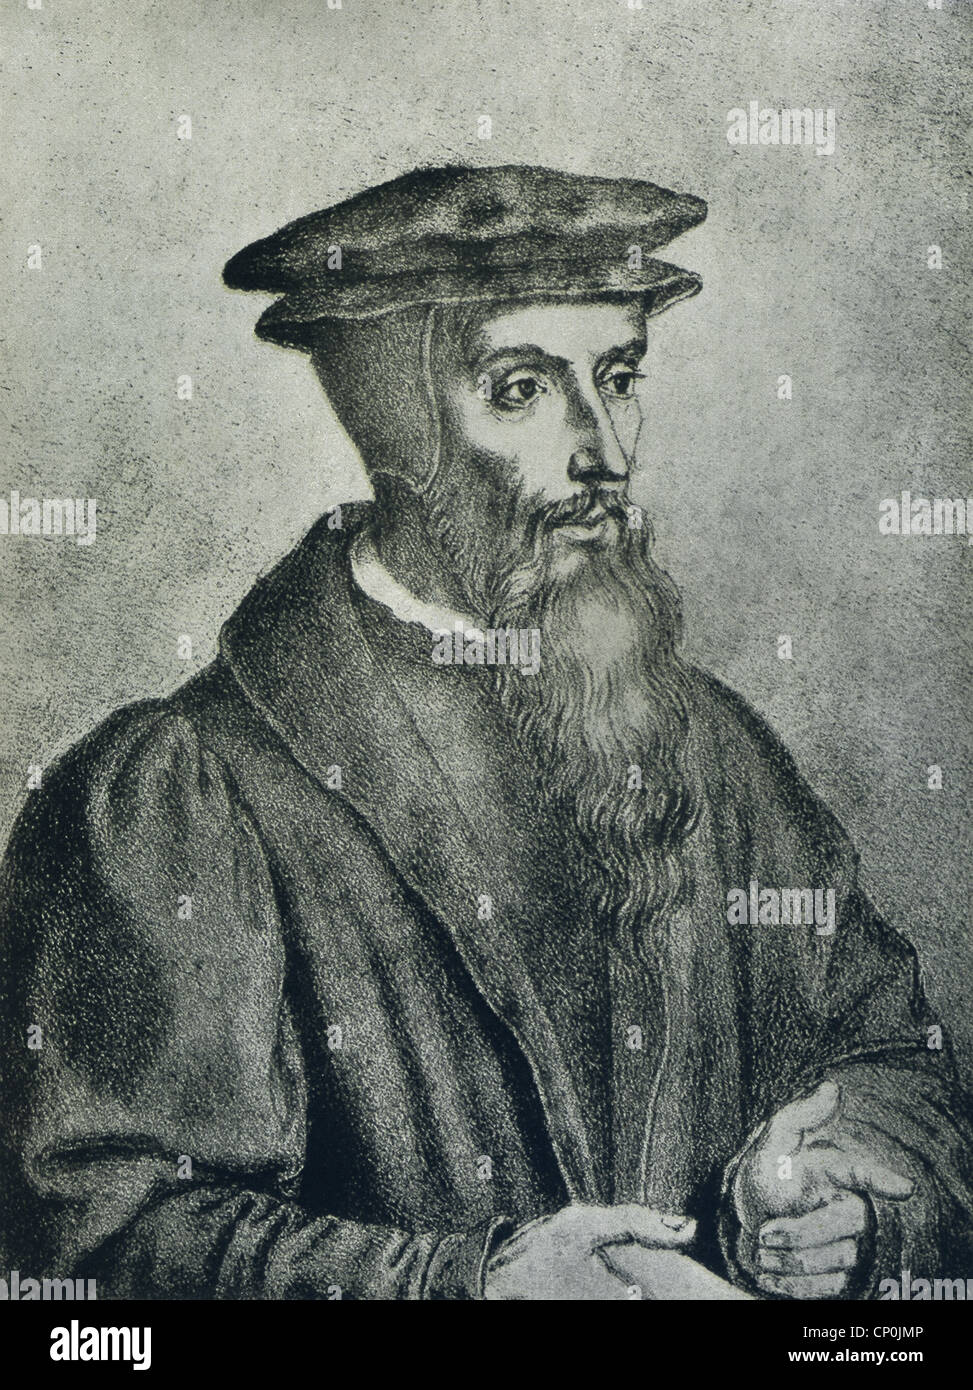 Johann Calvin (1509-1564) was a French theologian during the Reformation. - Stock Image